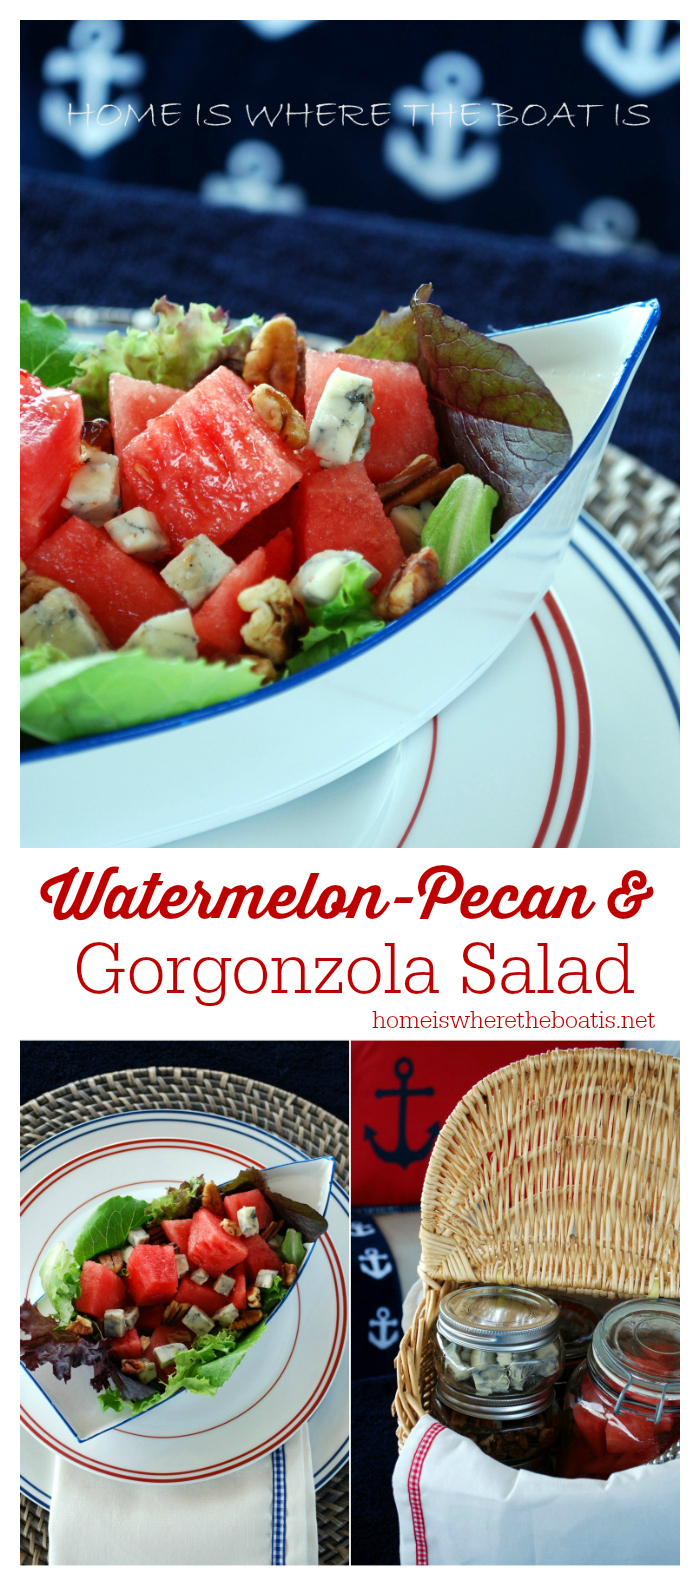 Watermelon, Pecan, and Gorgonzola Salad